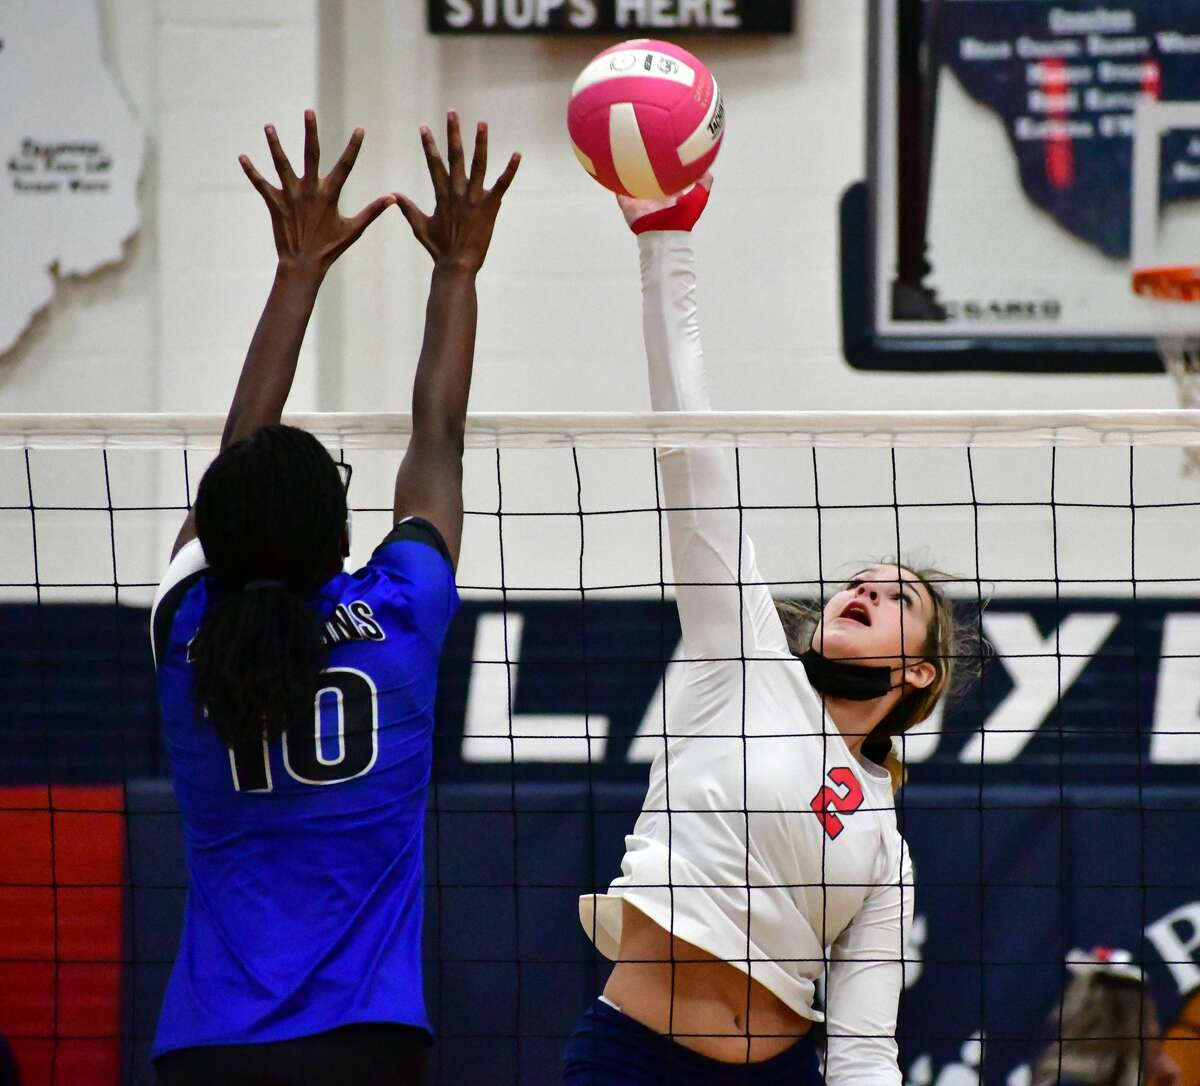 Plainview's Jaycee Louder skies for the ball during a District 3-5A volleyball match against Amarillo Palo Duro on Nov. 3, 2020 in the Dog House at Plainview High School.